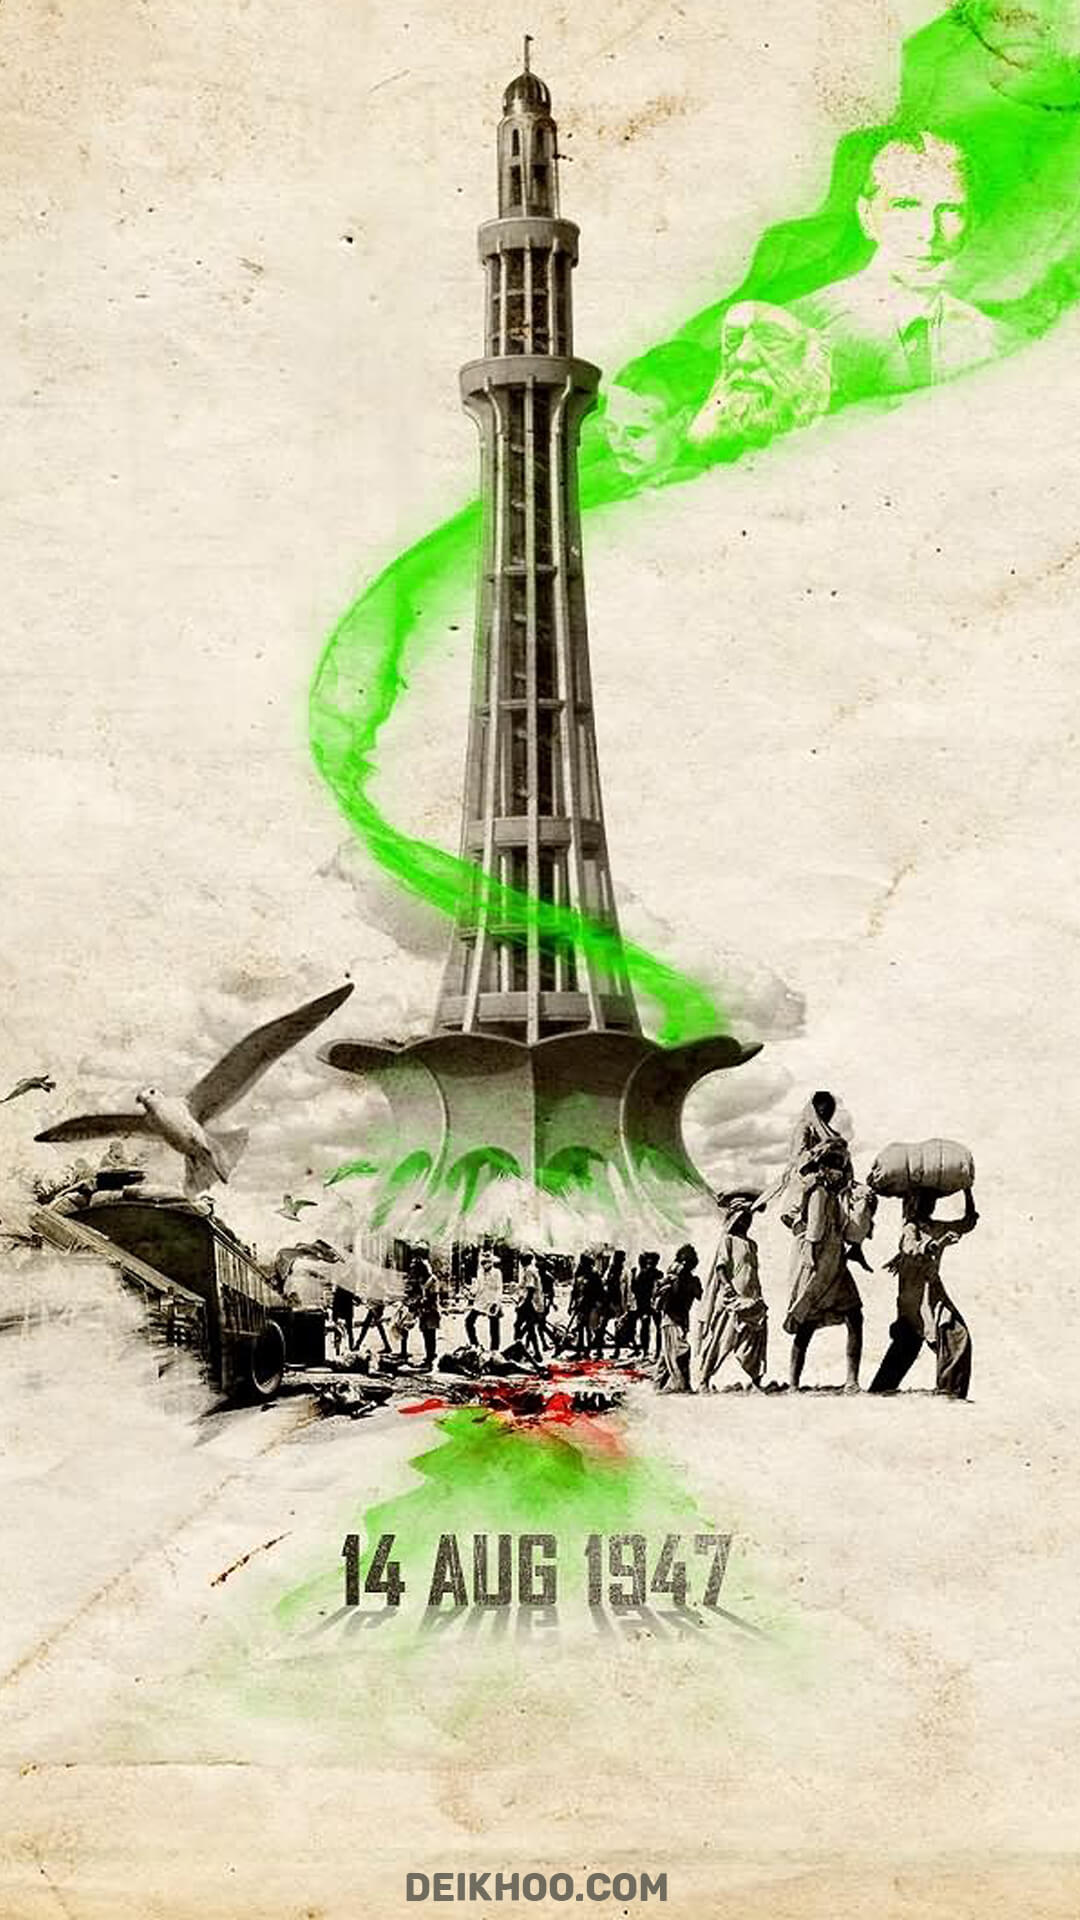 Independence Day Of Pakistan 14 August 1947 |Nayab khan ... |14 August